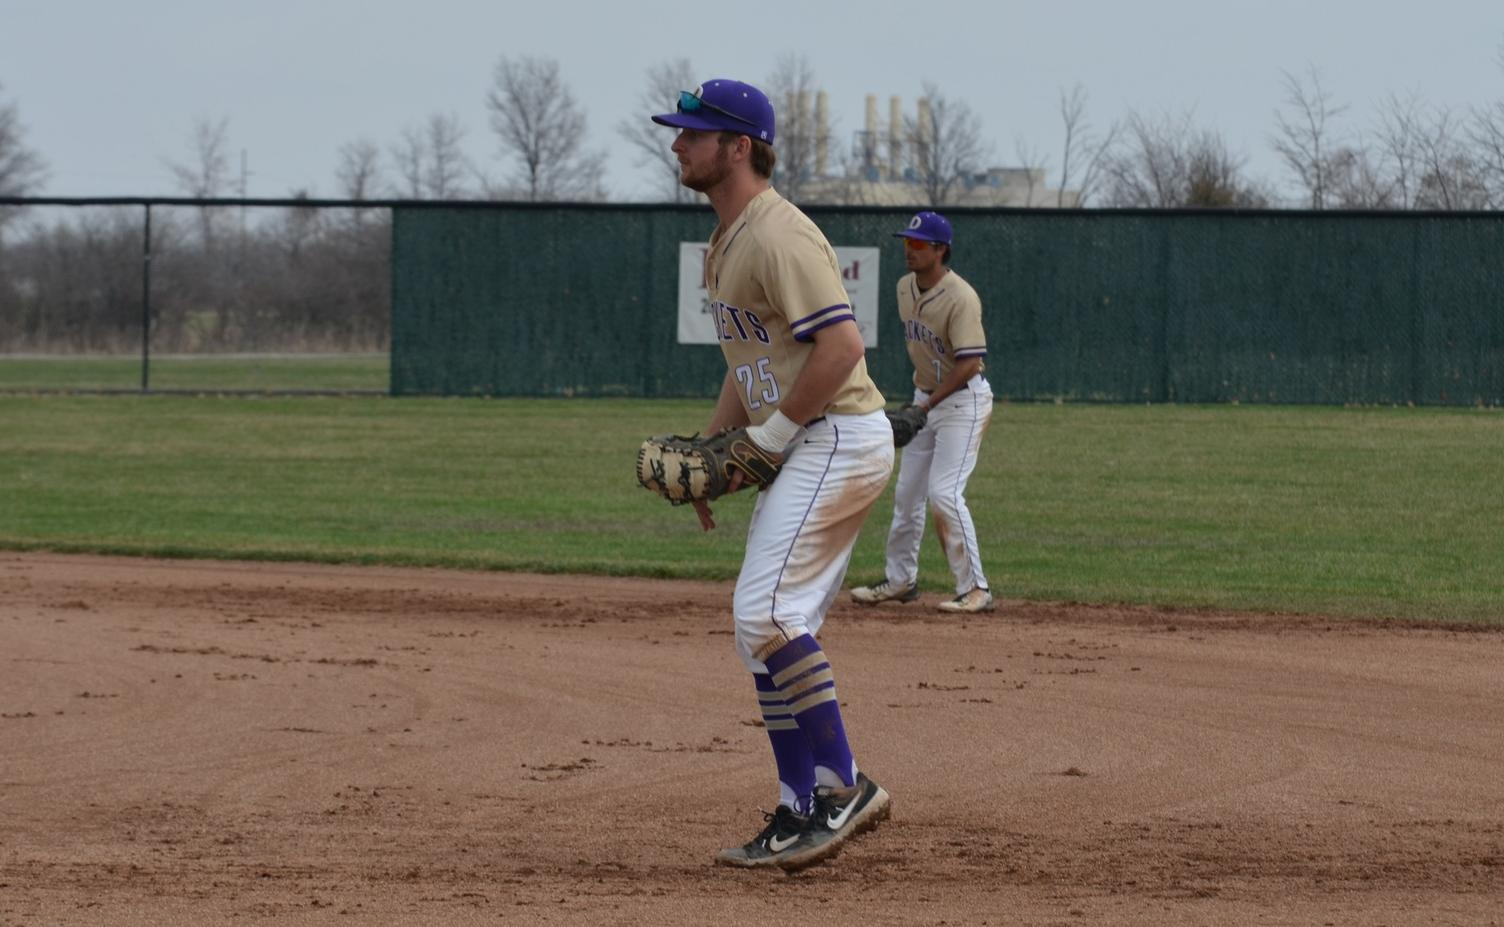 Konwinski, Reese Homer to Lead Yellow Jackets in HCAC Doubleheader